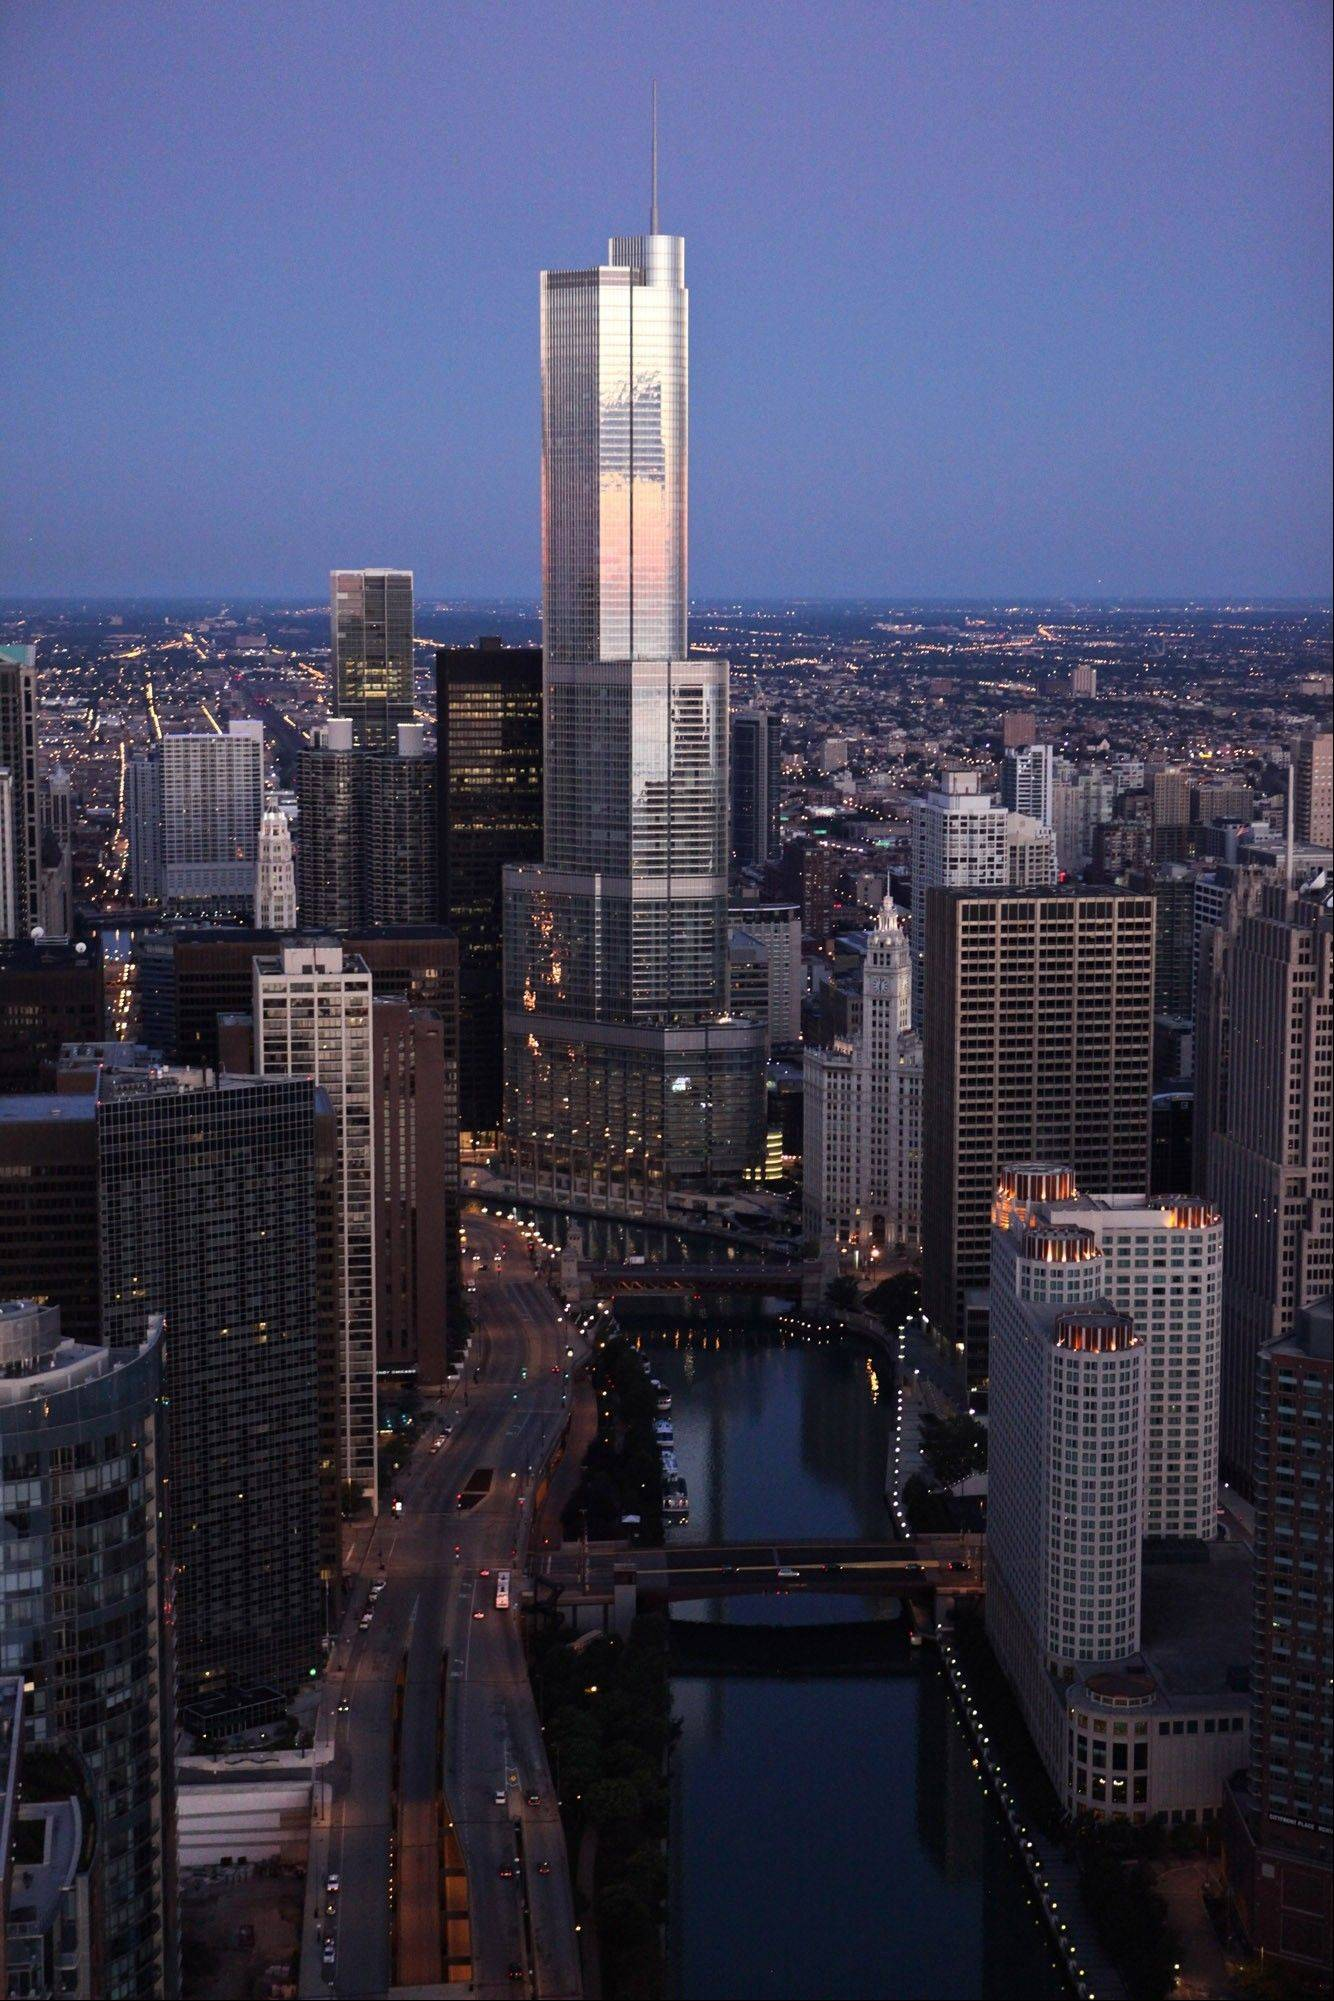 The 92-story Trump International Hotel & Tower in Chicago has 486 condos, according to its website.